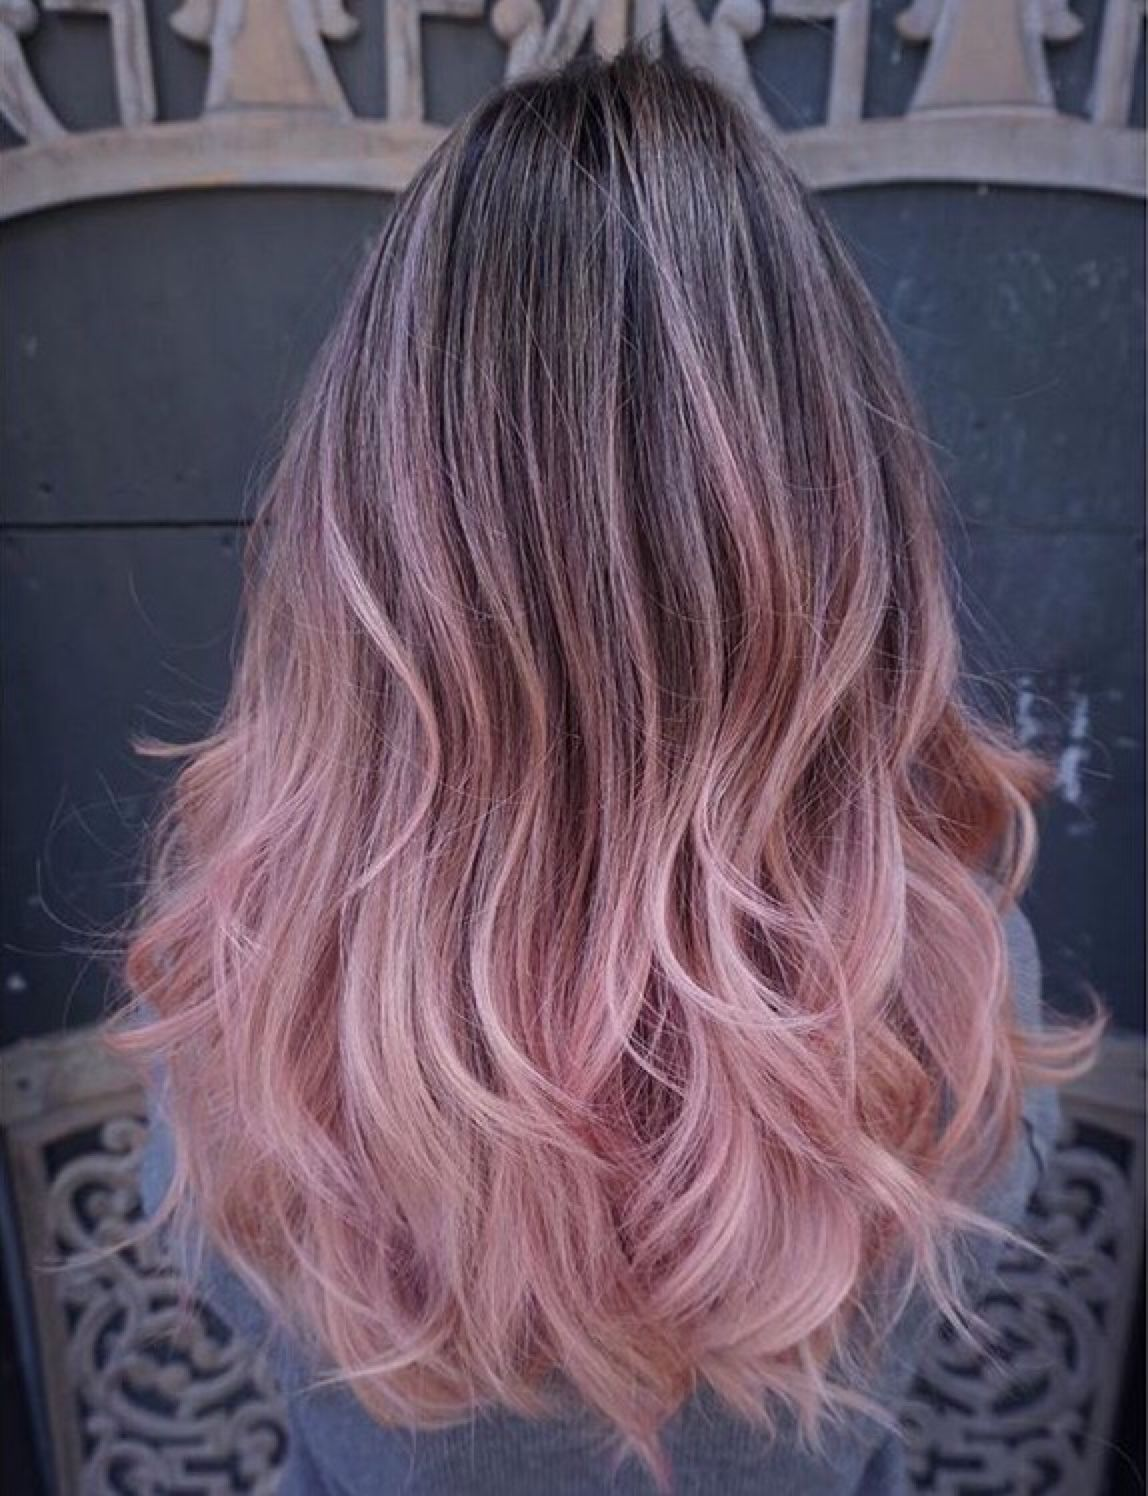 Pastel Ombre Hair Tumblr Tumblr Hair Pastel Hair Ombre Balayage